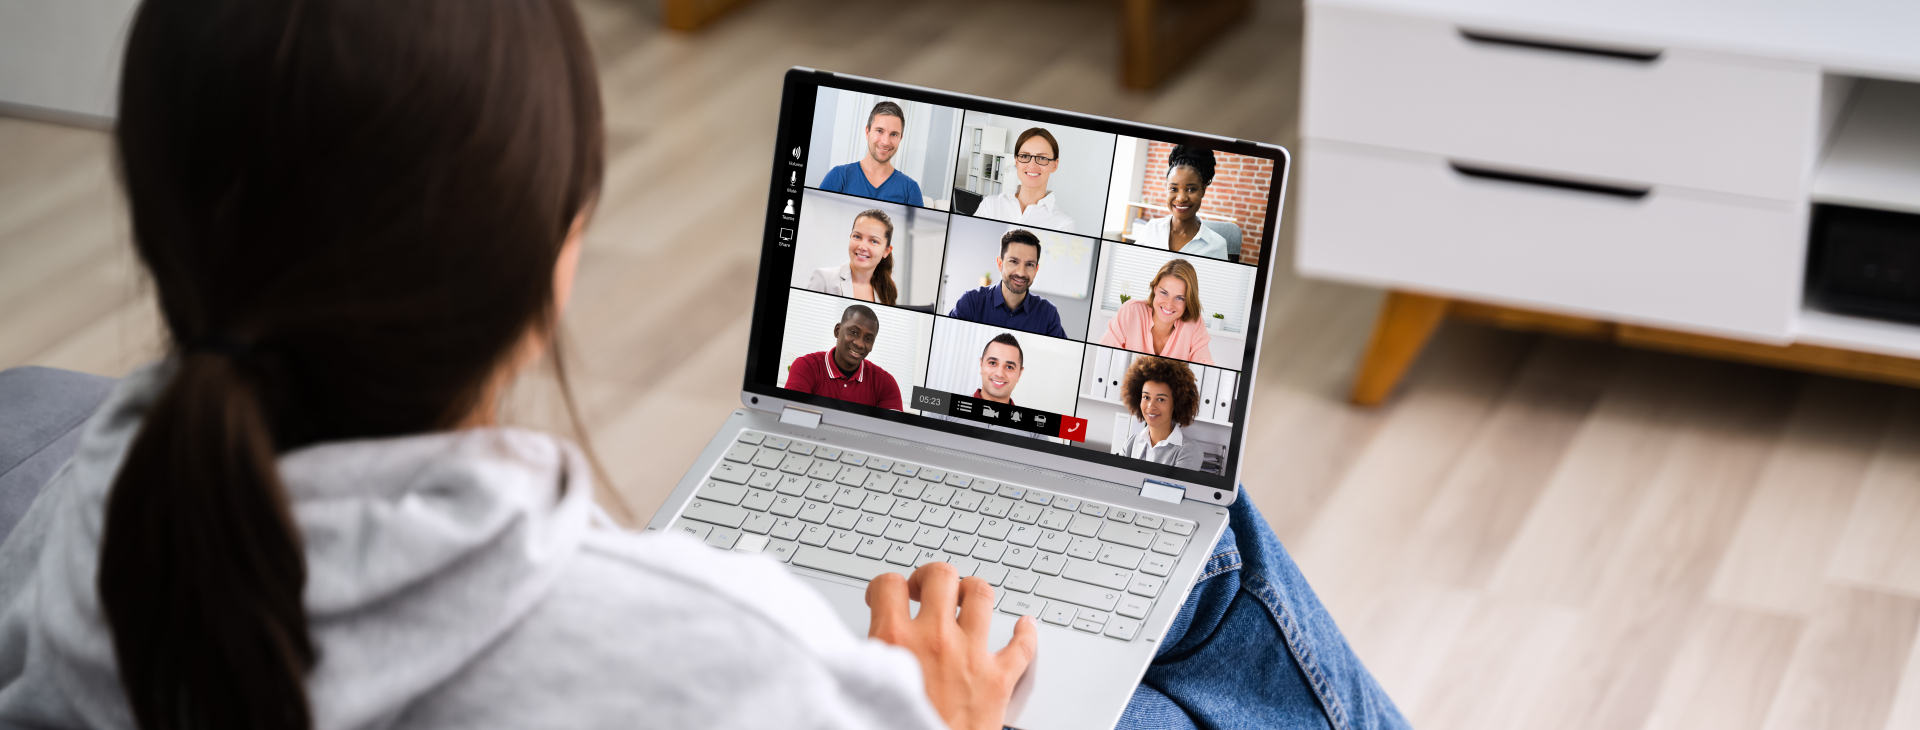 A person on a video conference.